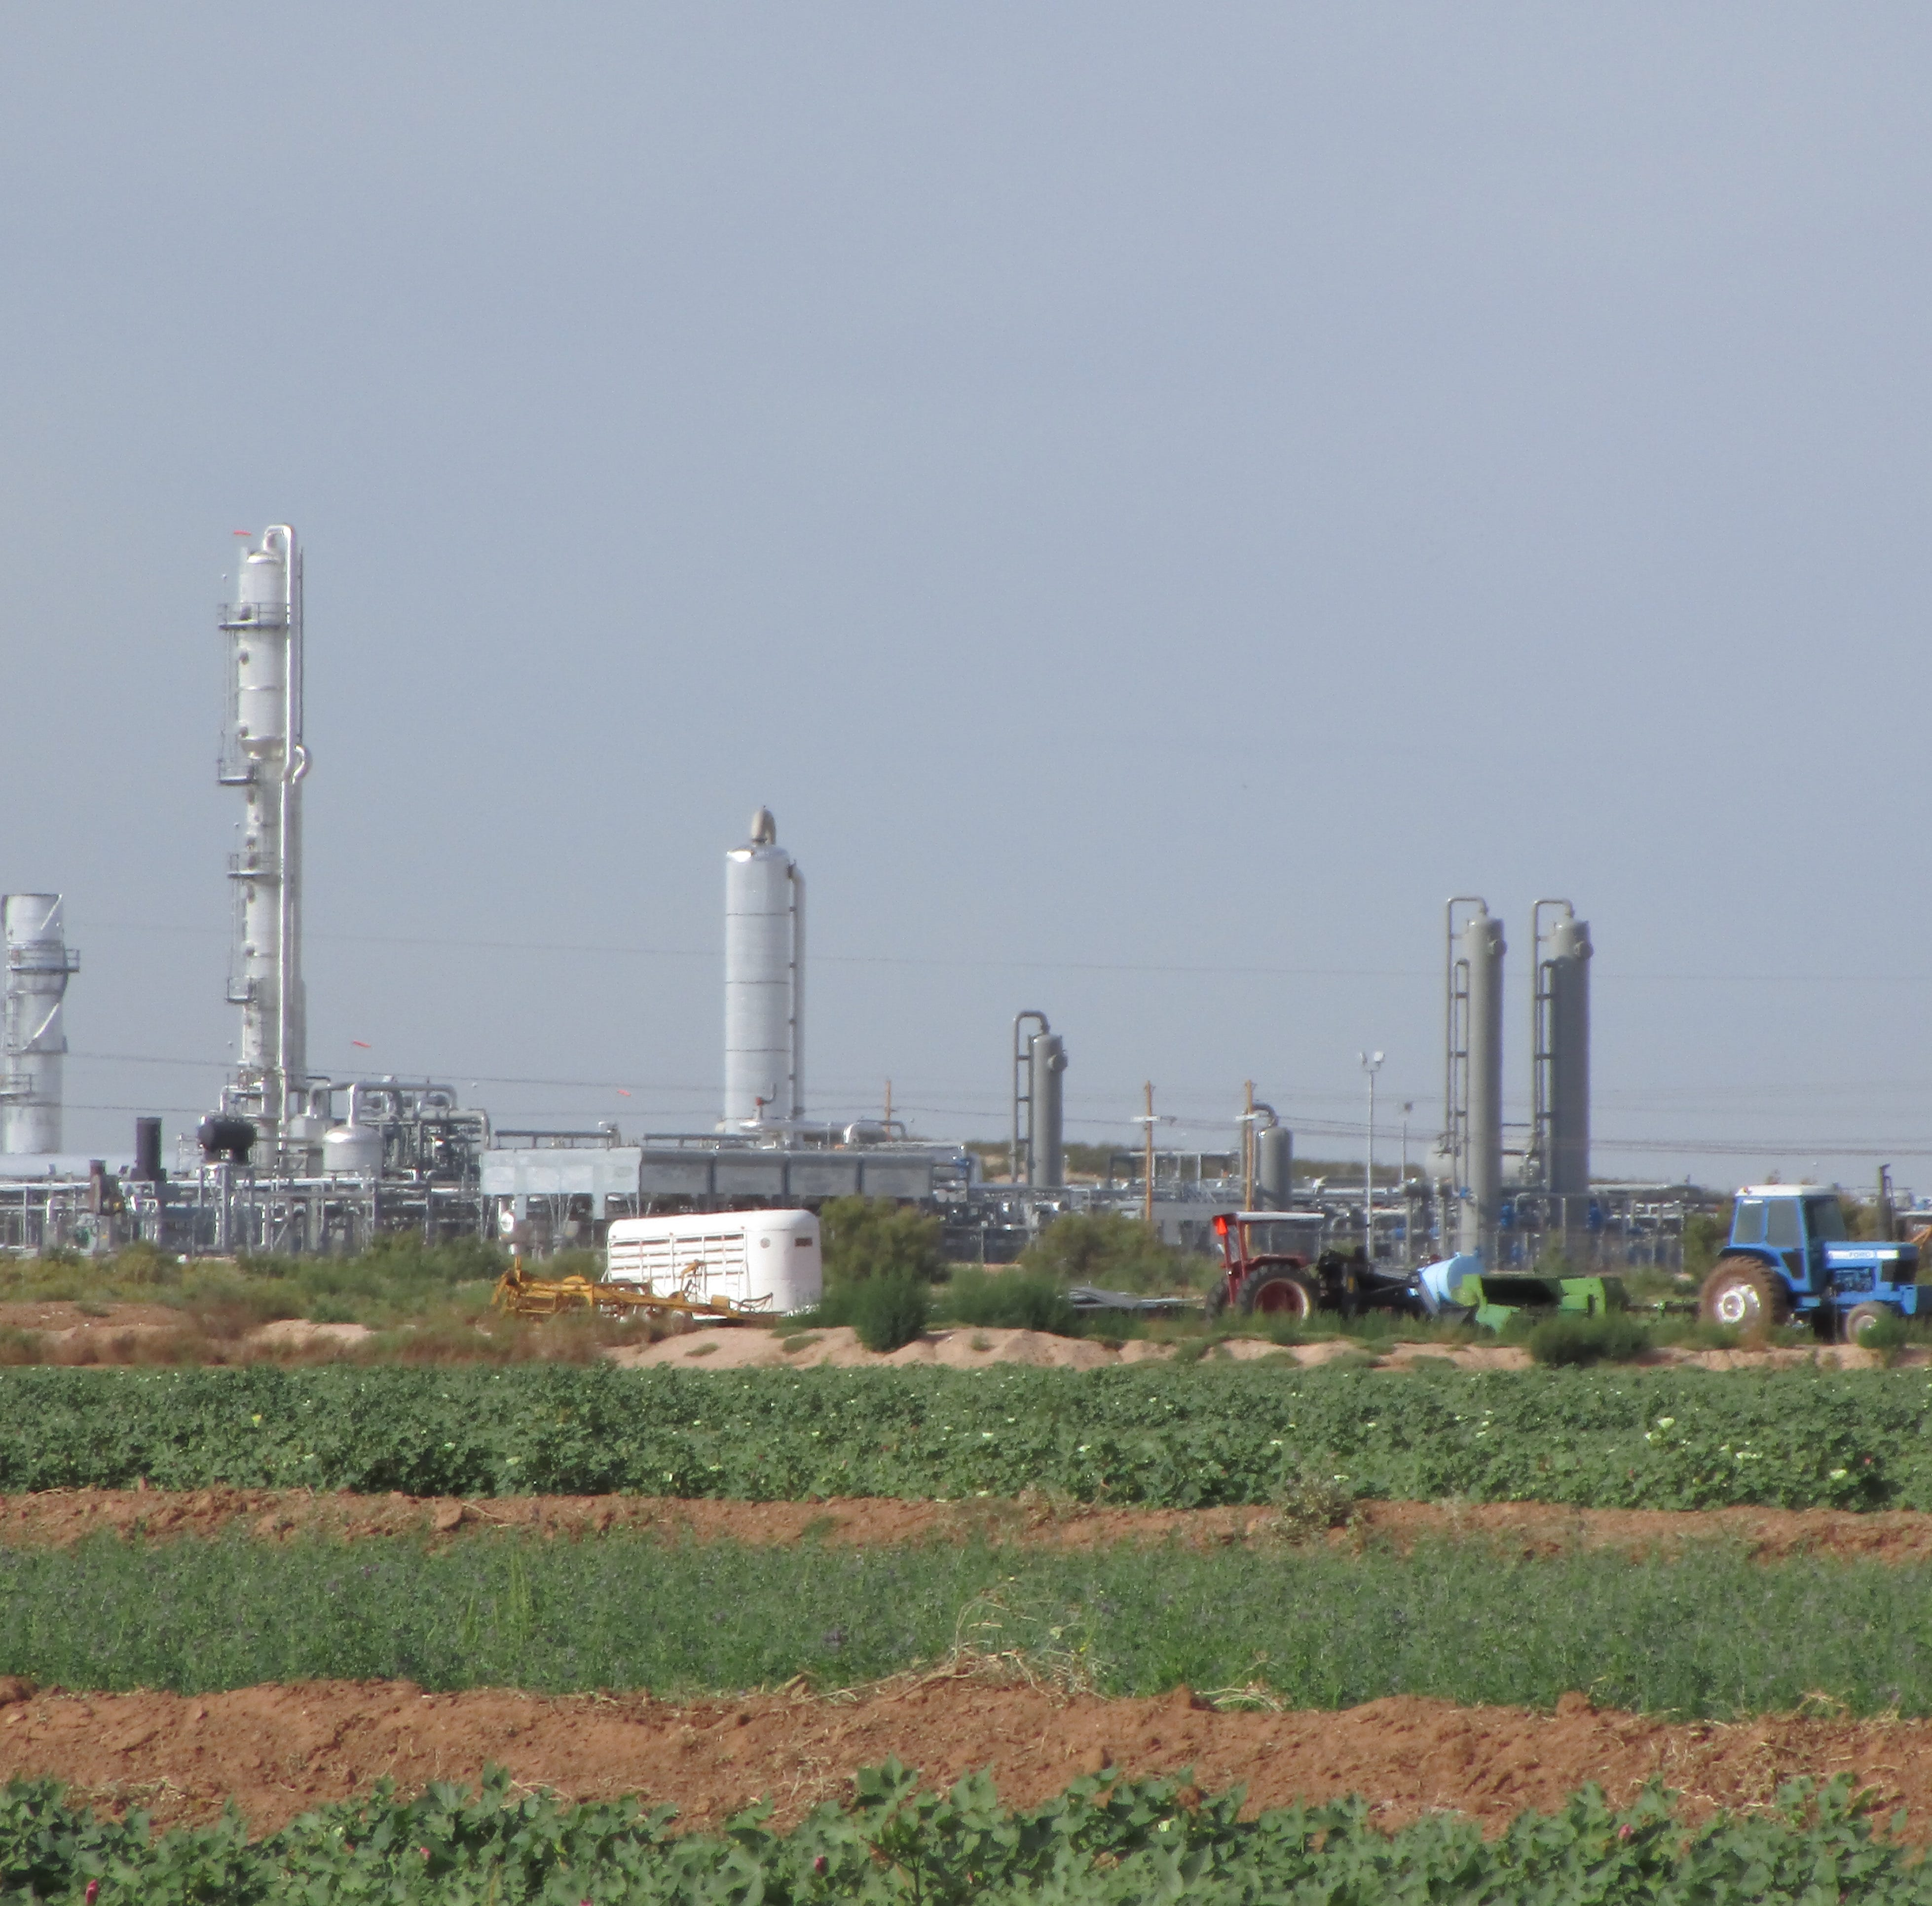 Permian oil and gas companies look to mitigate water waste from fracking